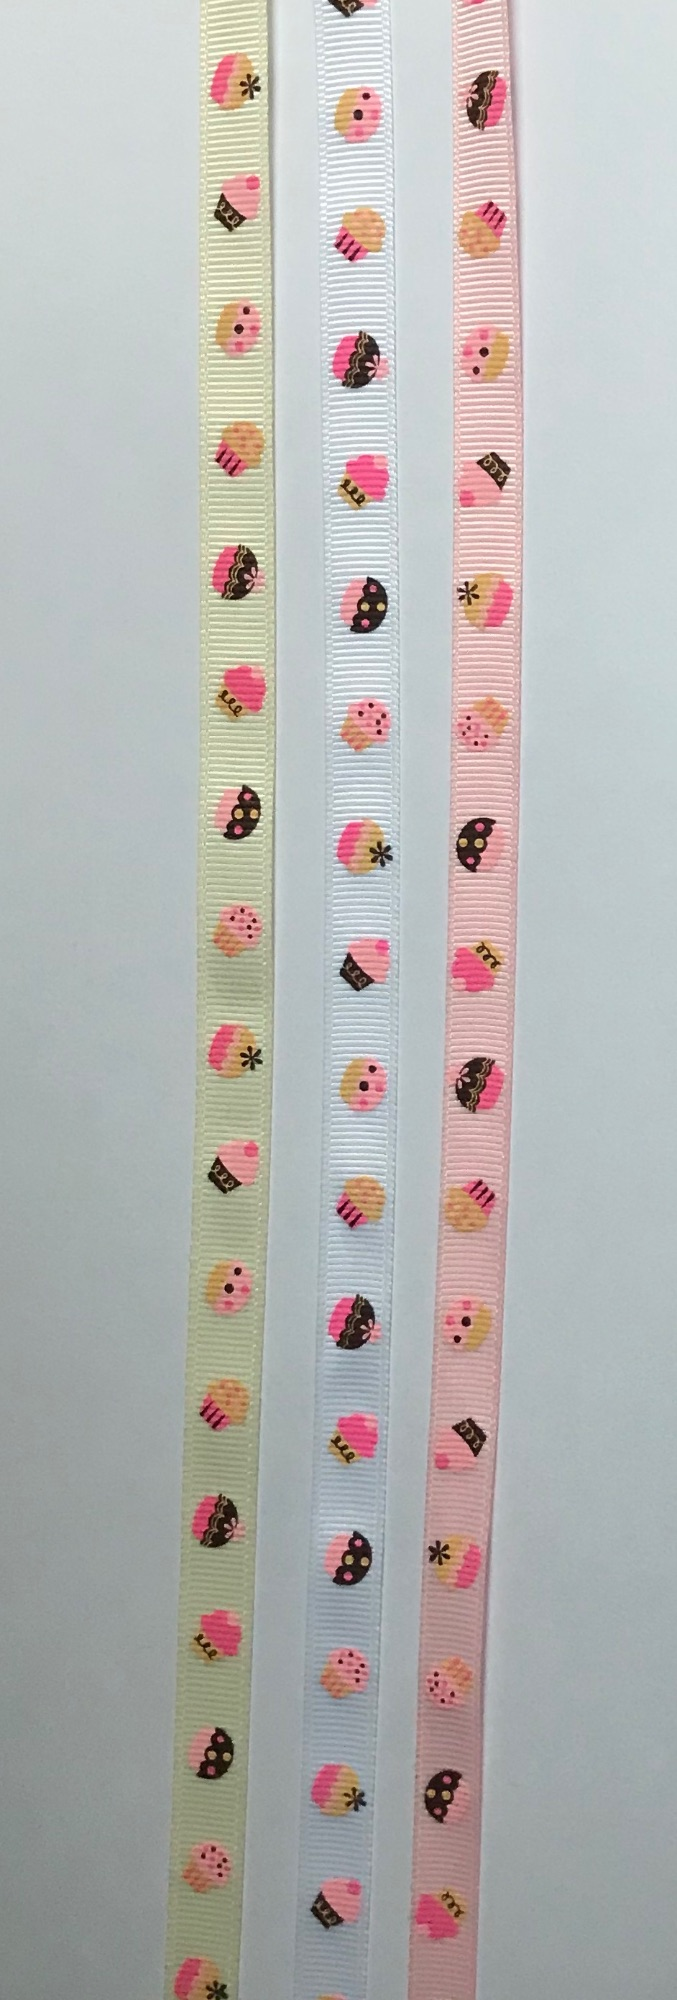 9mm Cup Cake Grosgrain Ribbon GGCUP2